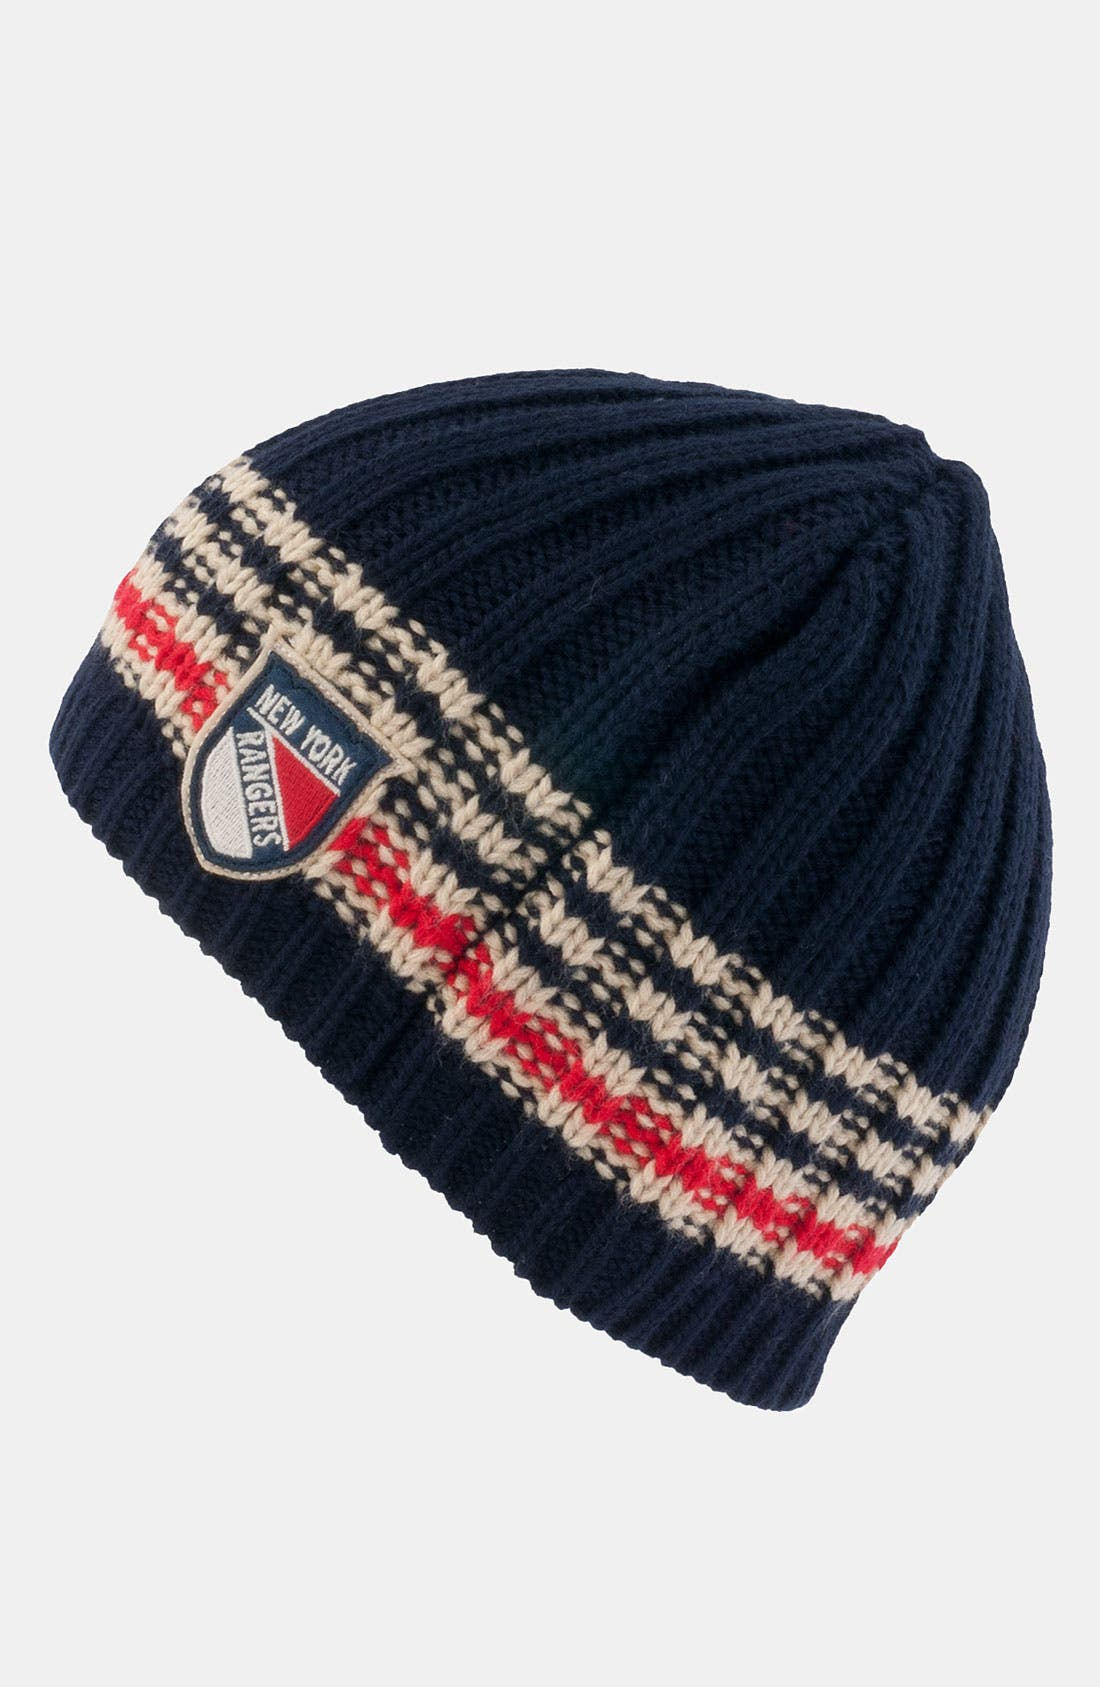 Main Image - American Needle 'New York Rangers - Targhee' Knit Hat